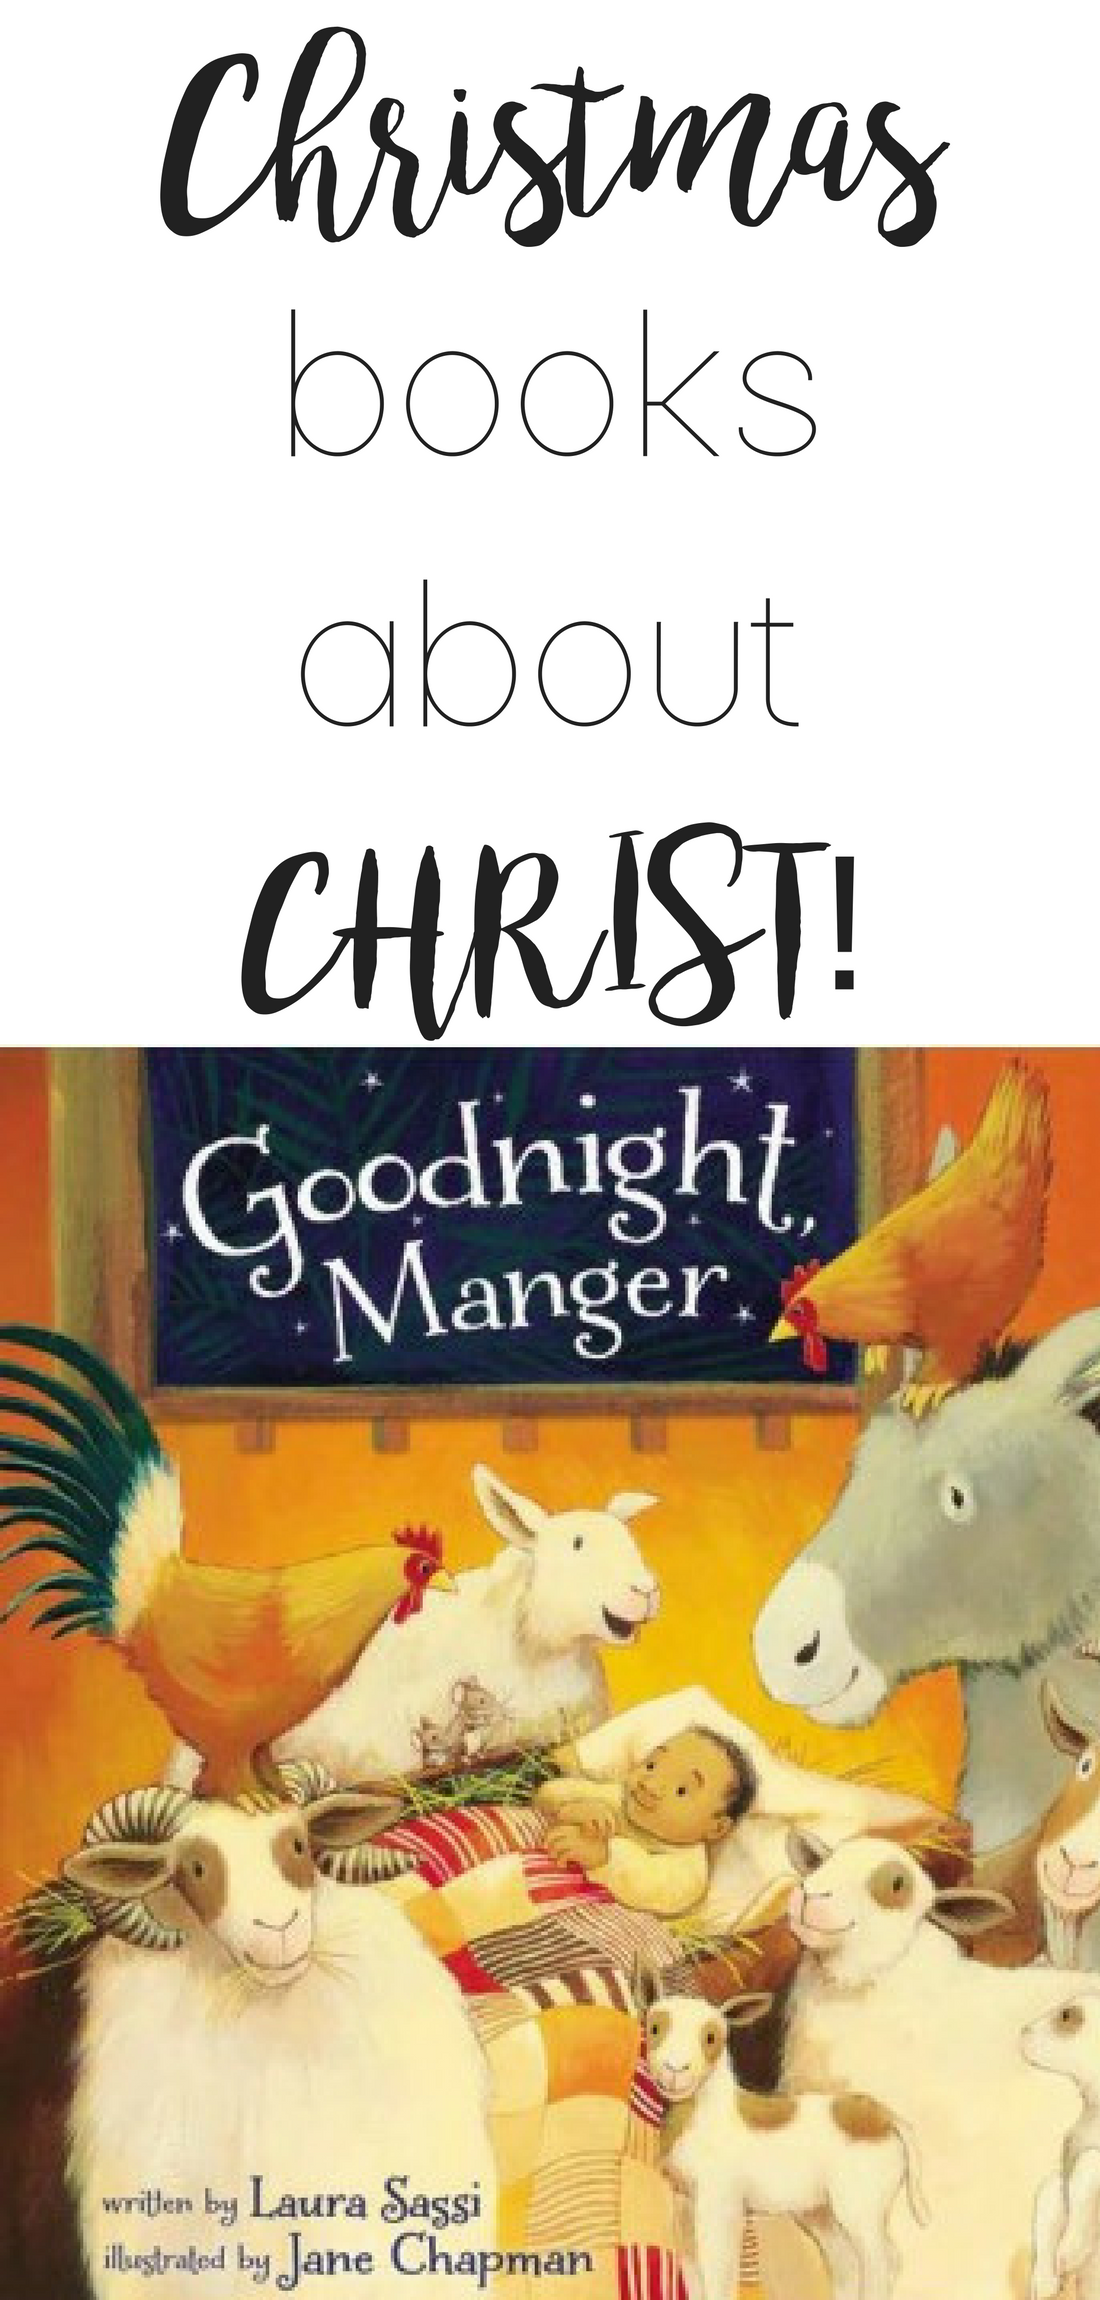 christmas books about Christ